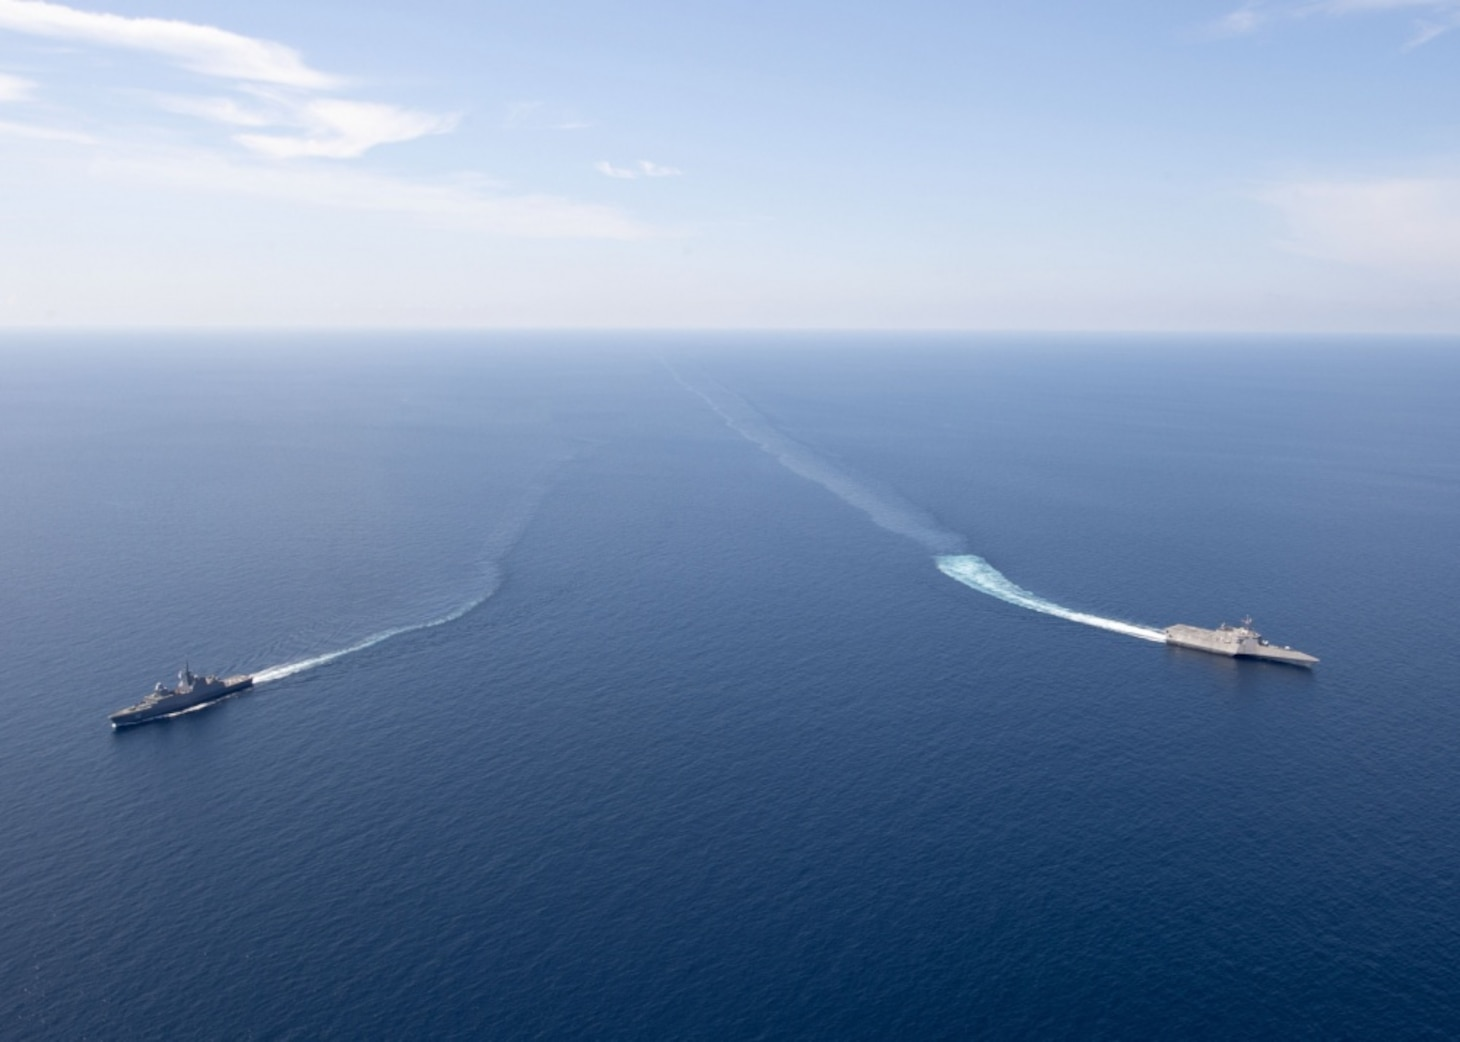 SOUTH CHINA SEA (May 25, 2020) The Independence-variant littoral combat ship USS Gabrielle Giffords (LCS 10), right, exercises with the Republic of Singapore Navy Formidable-class multi-role stealth frigate RSS Steadfast (FFS 70) in the South China Sea, May 25, 2020. Gabrielle Giffords, part of Destroyer Squadron Seven, is on a rotational deployment, operating in the U.S. 7th Fleet area of operations to enhance interoperability with partners and serve as a ready-response force.